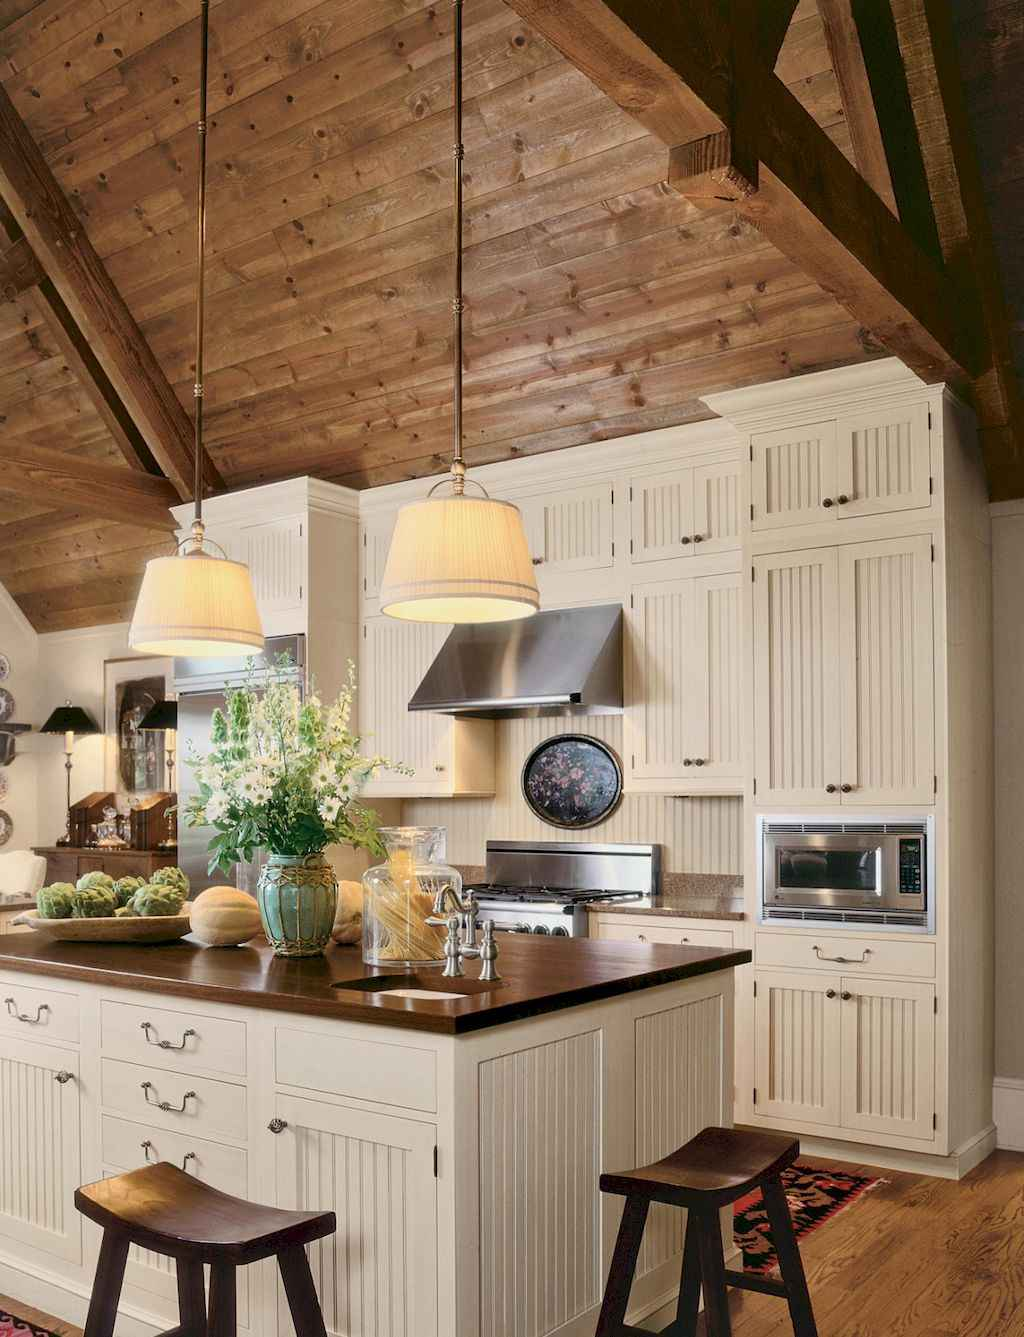 40 Stunning Farmhouse Kitchen Ideas On A Budget 35 Roomadnesscom